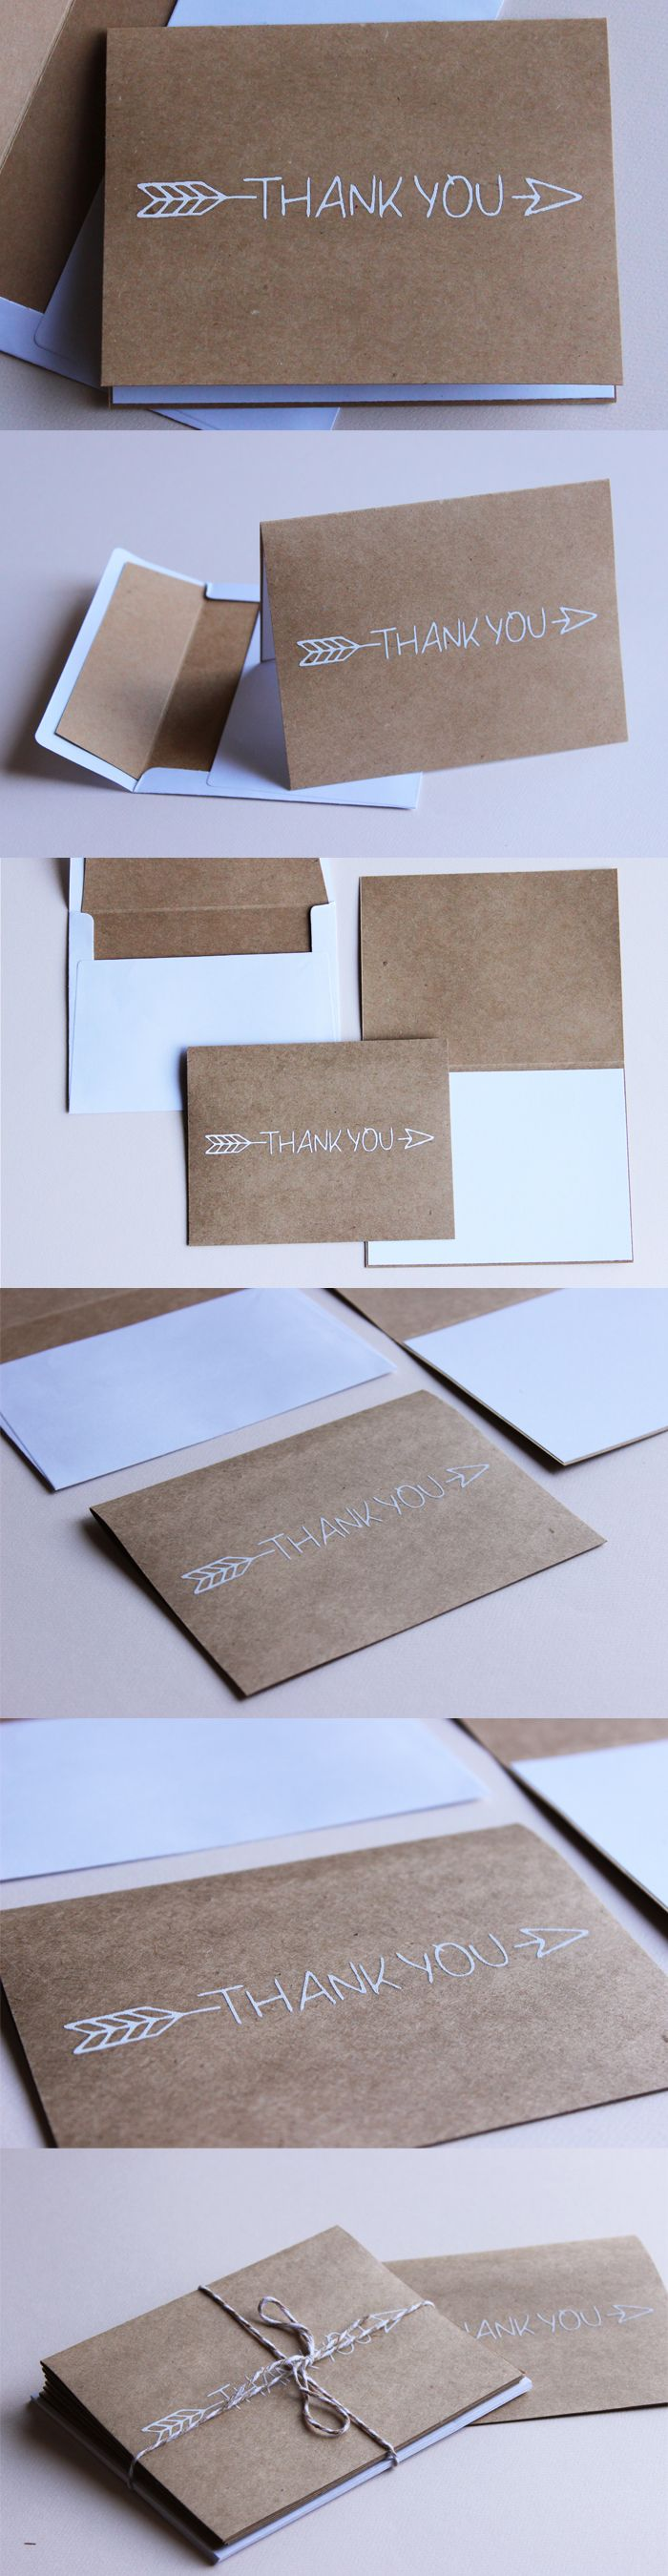 Thank You Arrow. Typographic Cards.